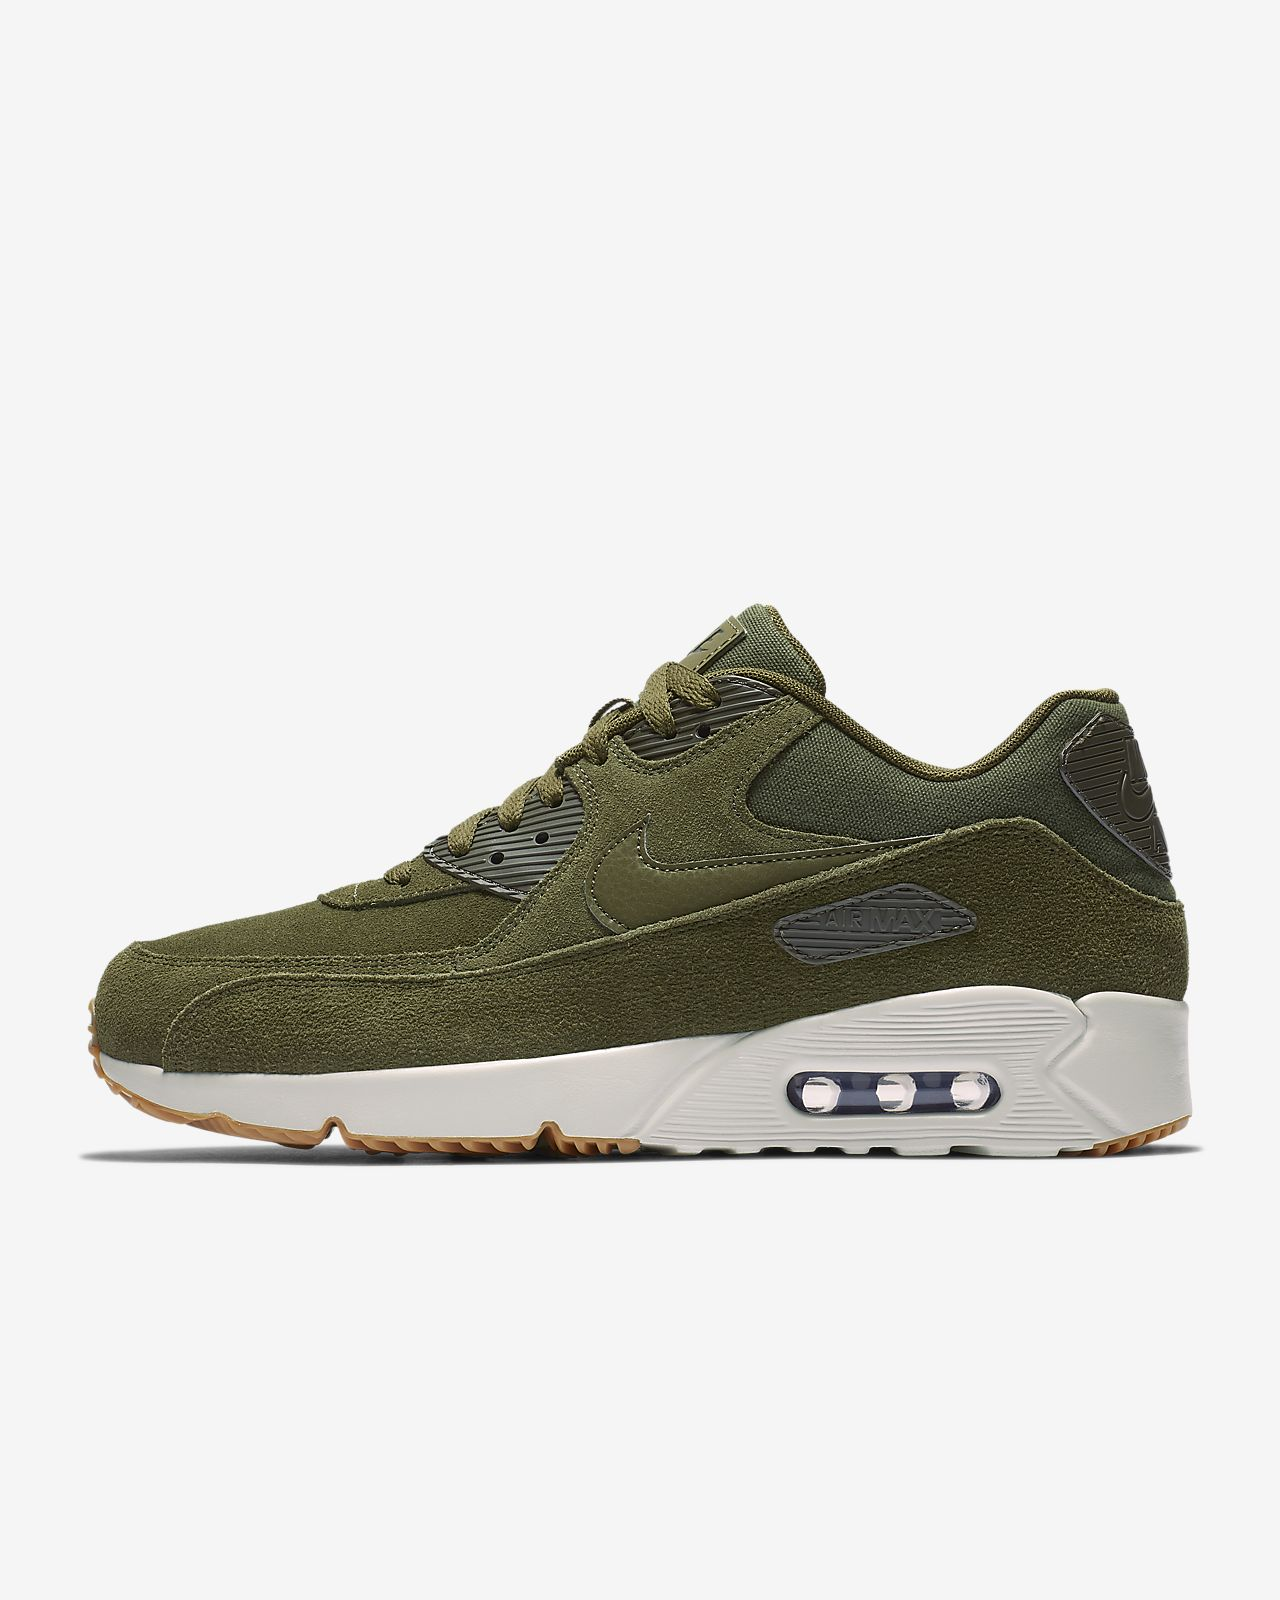 wholesale dealer cef3e 95141 ... Nike Air Max 90 Ultra 2.0 Men s Shoe